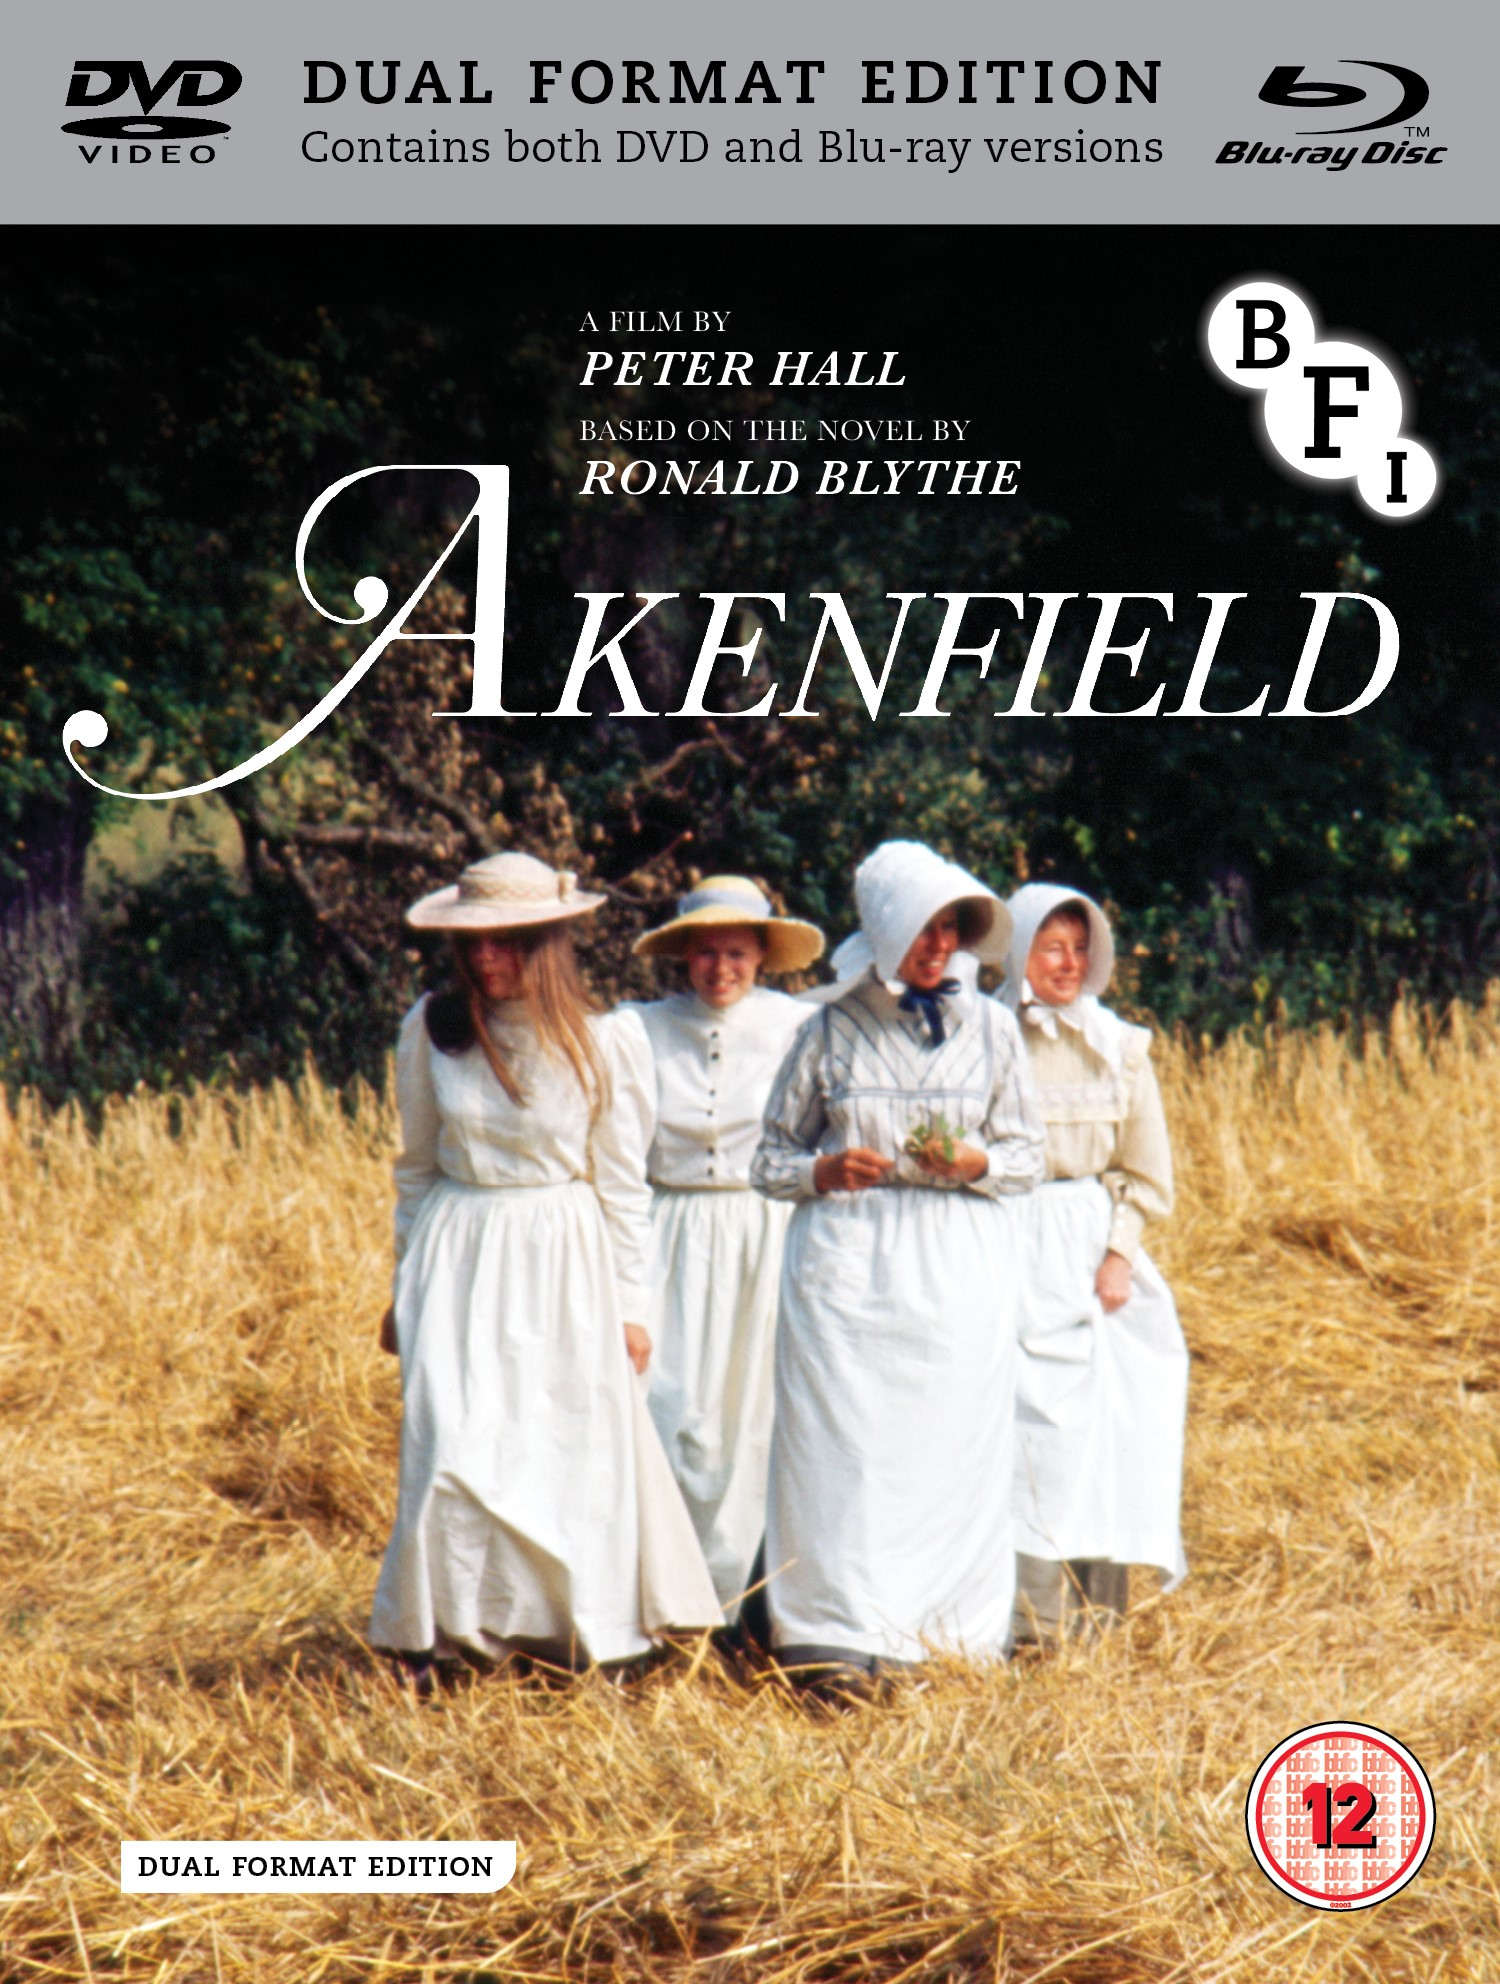 Buy Akenfield (Dual Format Edition)